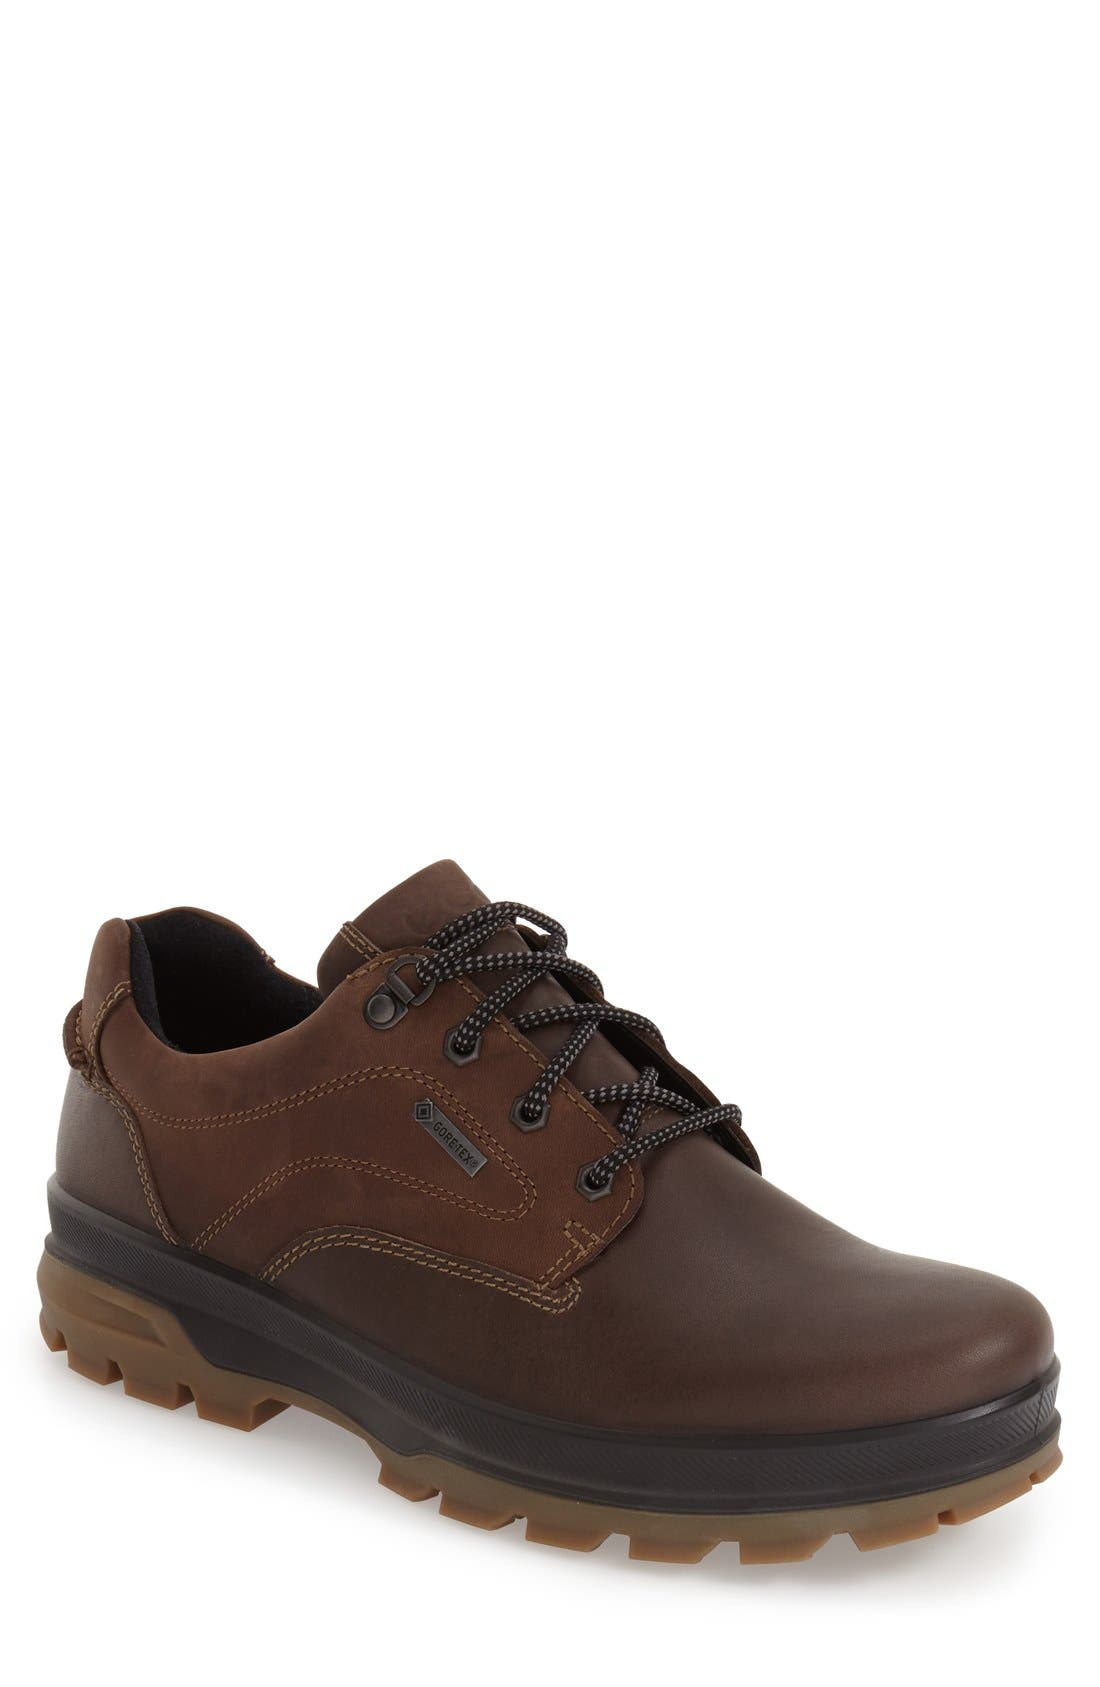 'Rugged Track GTX' Oxford,                             Main thumbnail 1, color,                             DARK CLAY/ COFFEE LEATHER